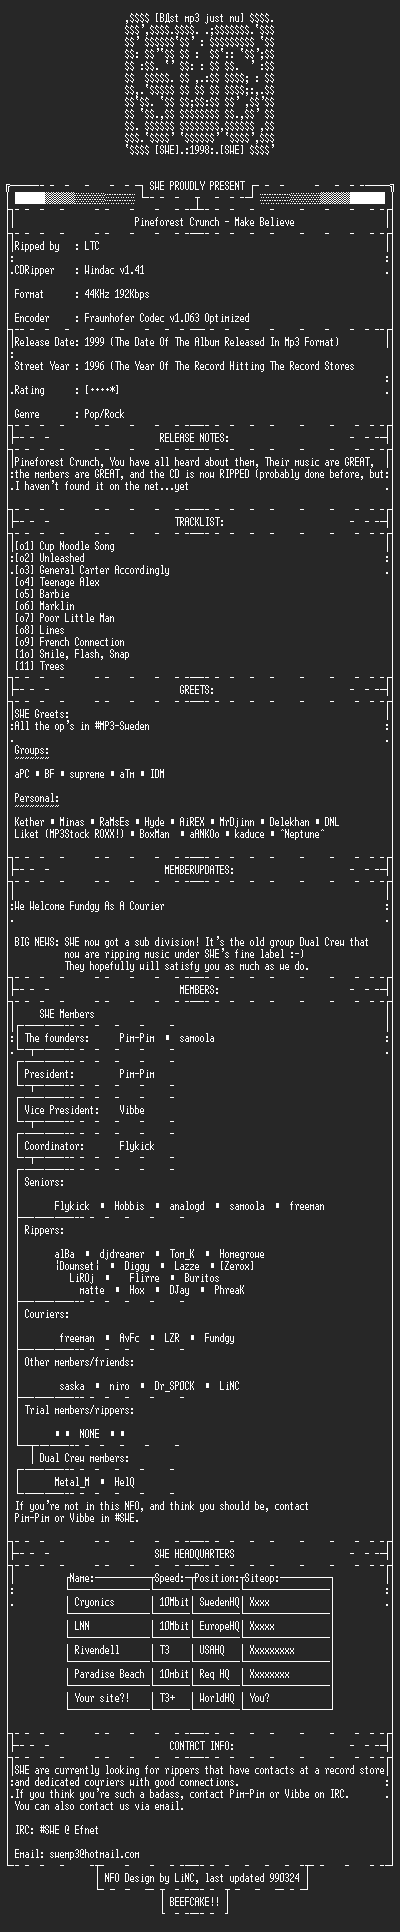 NFO file for Pineforest_crunch_-_make_believe_(1996)-SWE